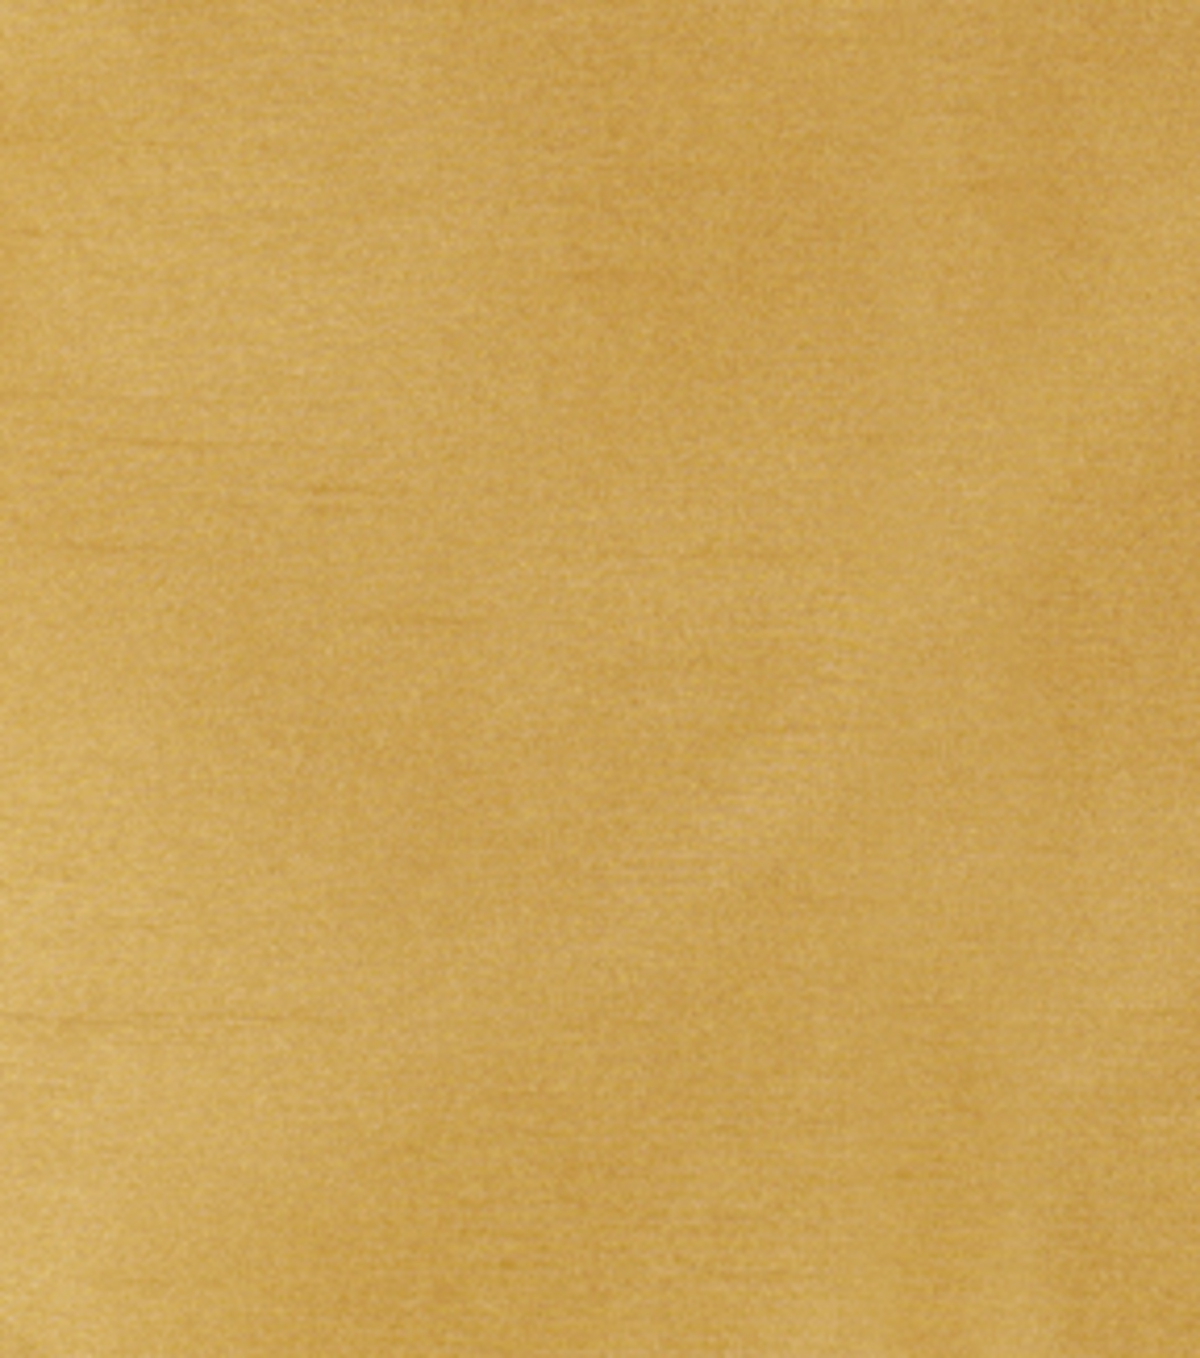 8\u0027\u0027x8\u0027\u0027 Home Decor Fabric Swatch-Solid Fabric Eaton Square Comros Gold